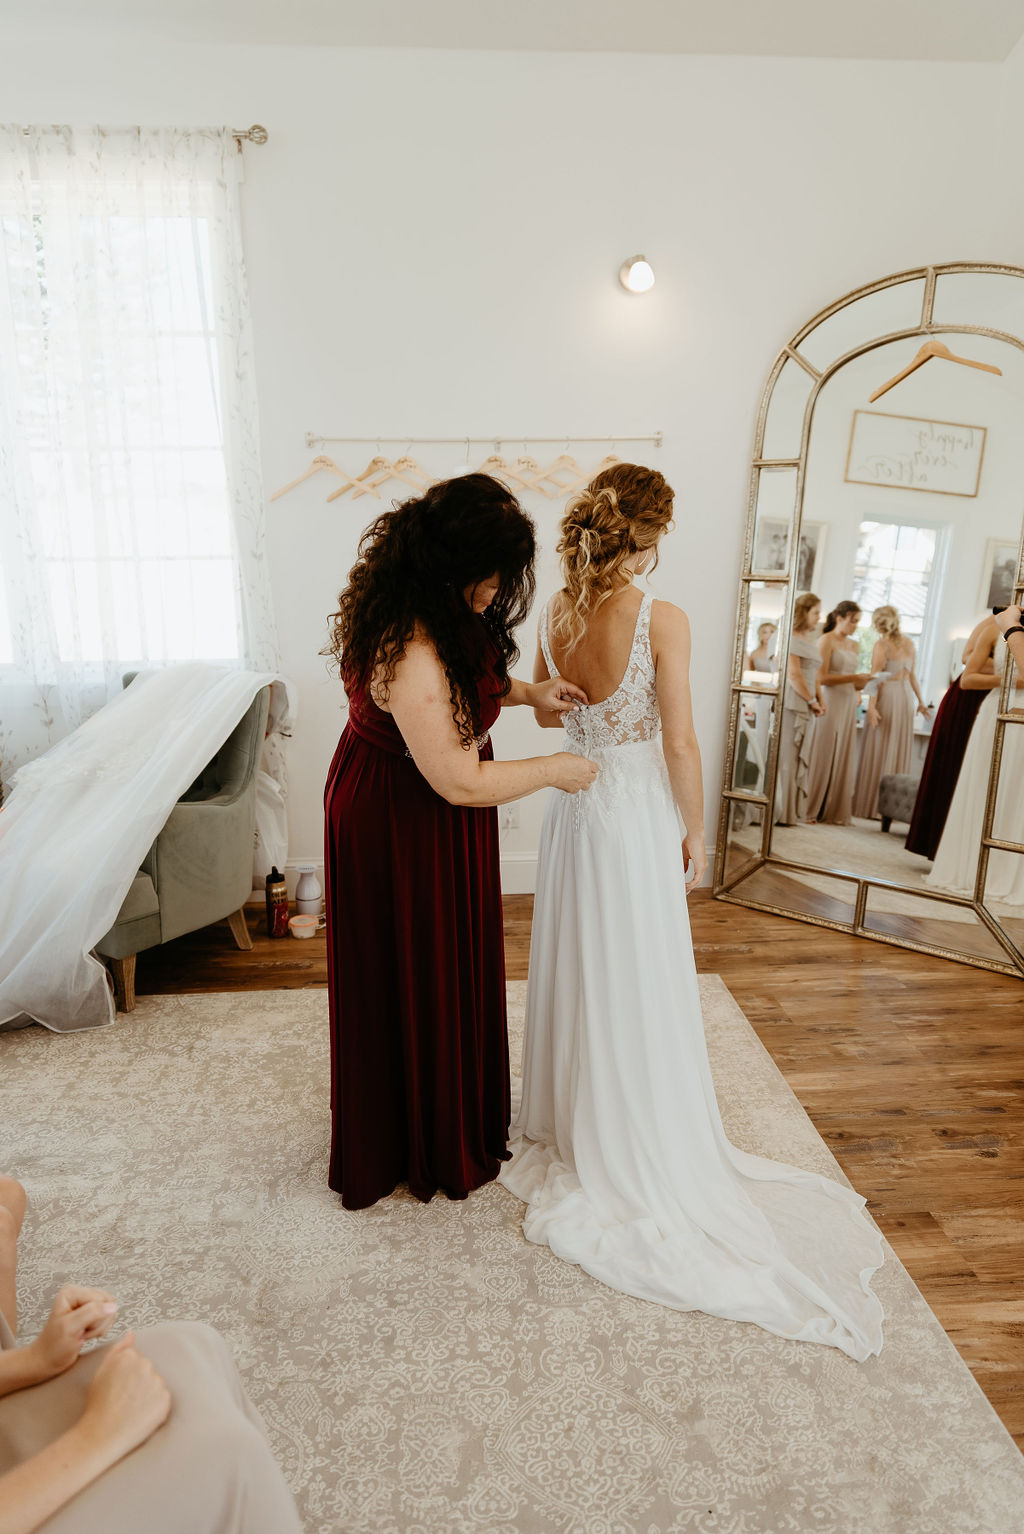 Mom helps bride button up her dress at bonnie blues event venue